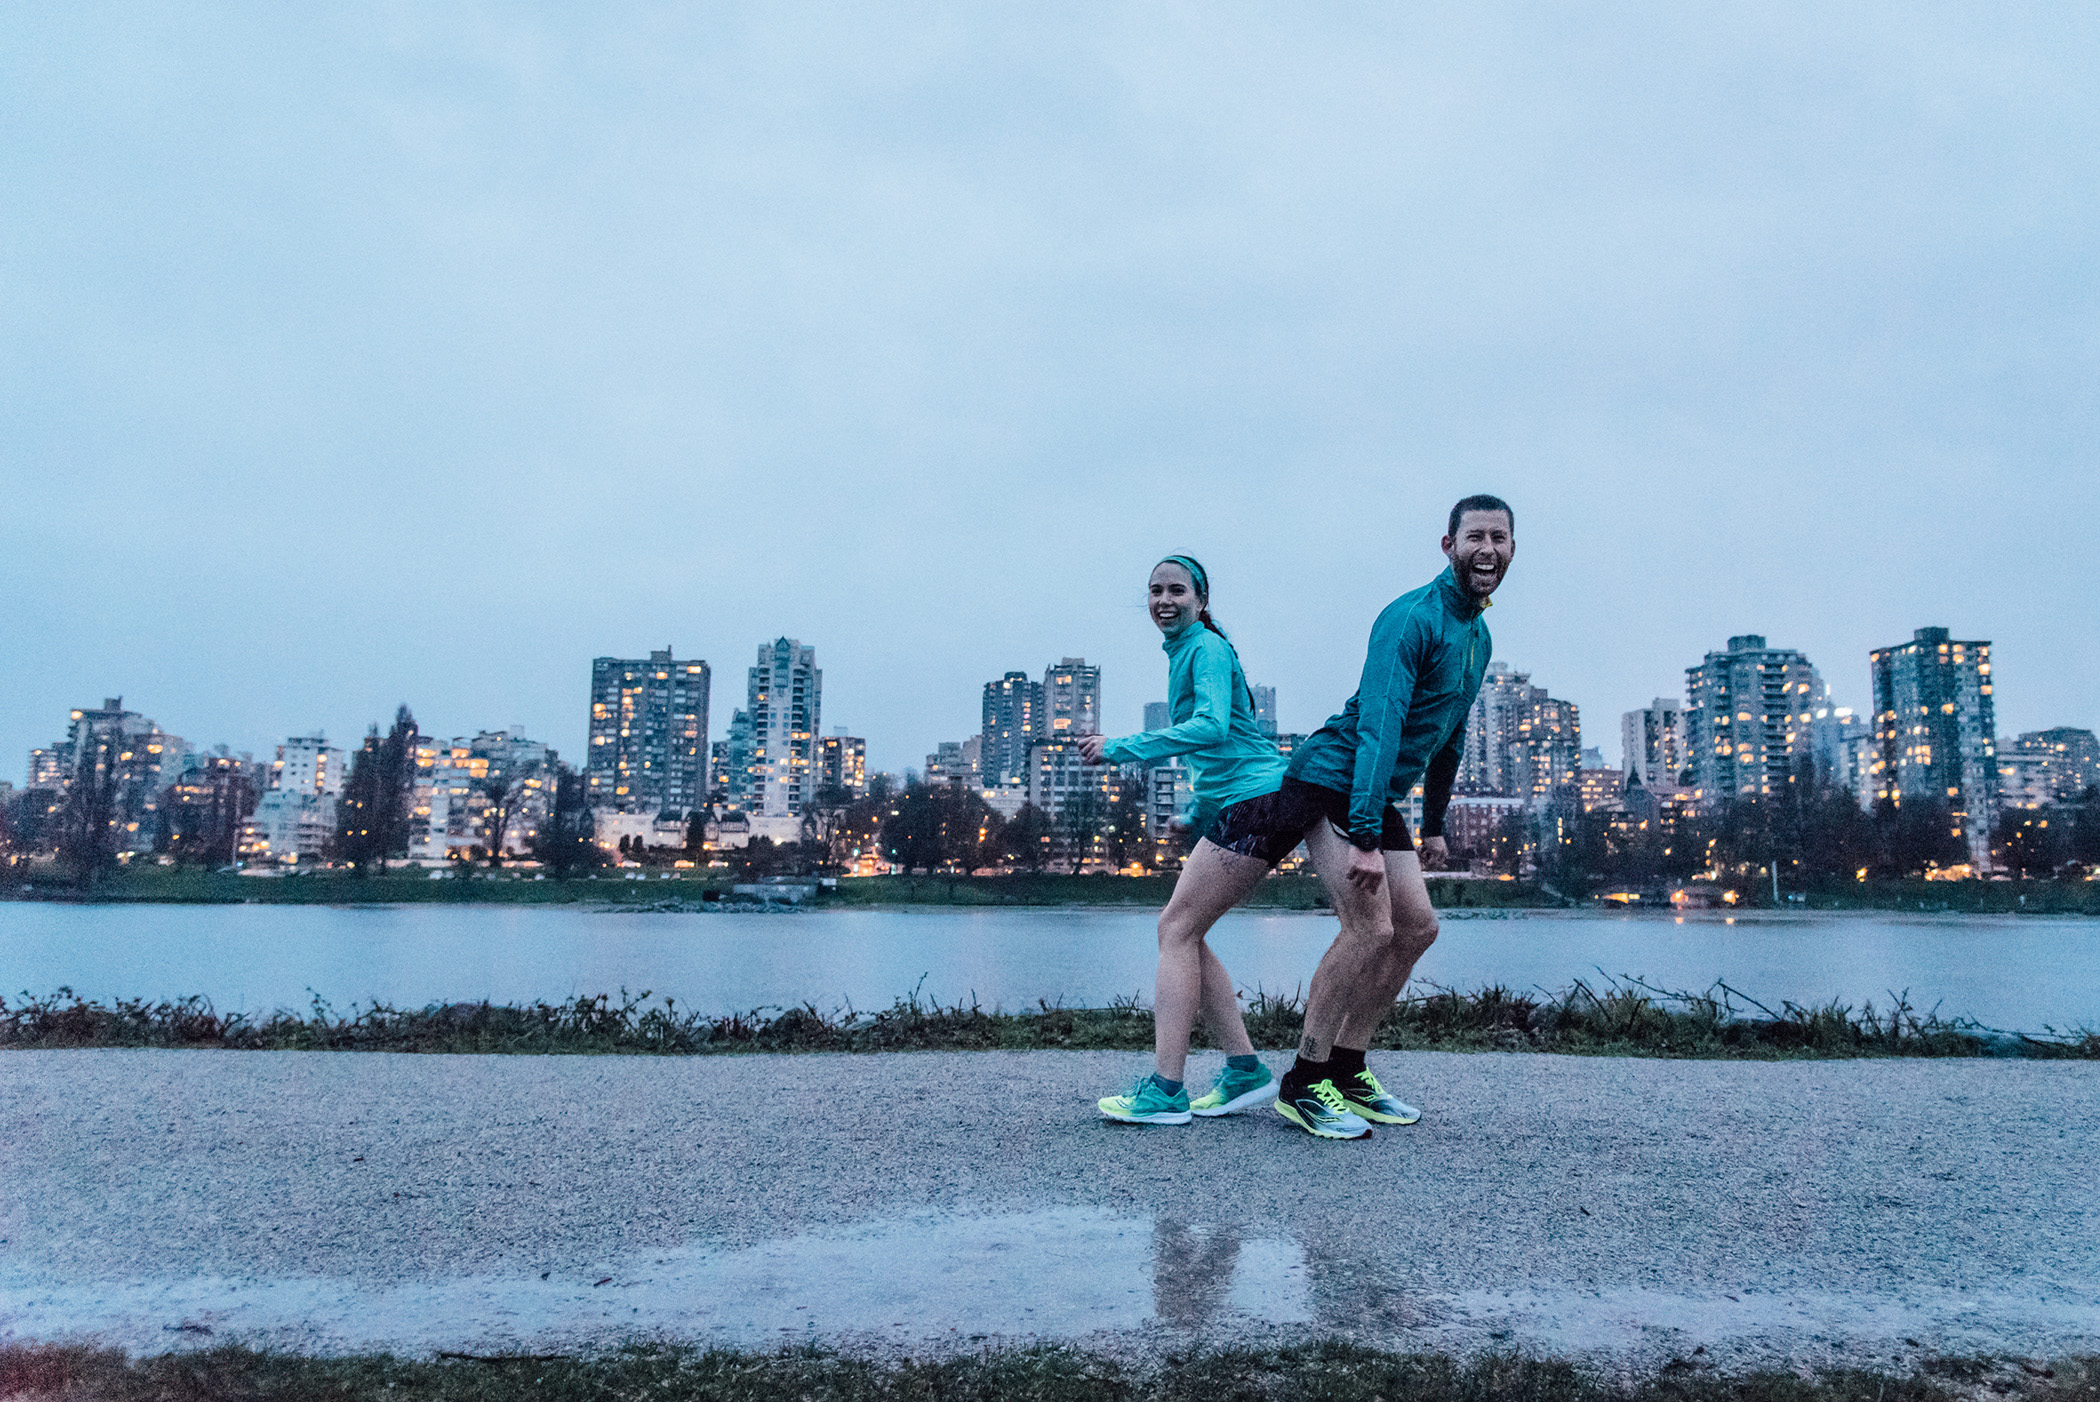 Saucony-Seekers-Vancouver-ChrisBrinleeJr-MAR16-23